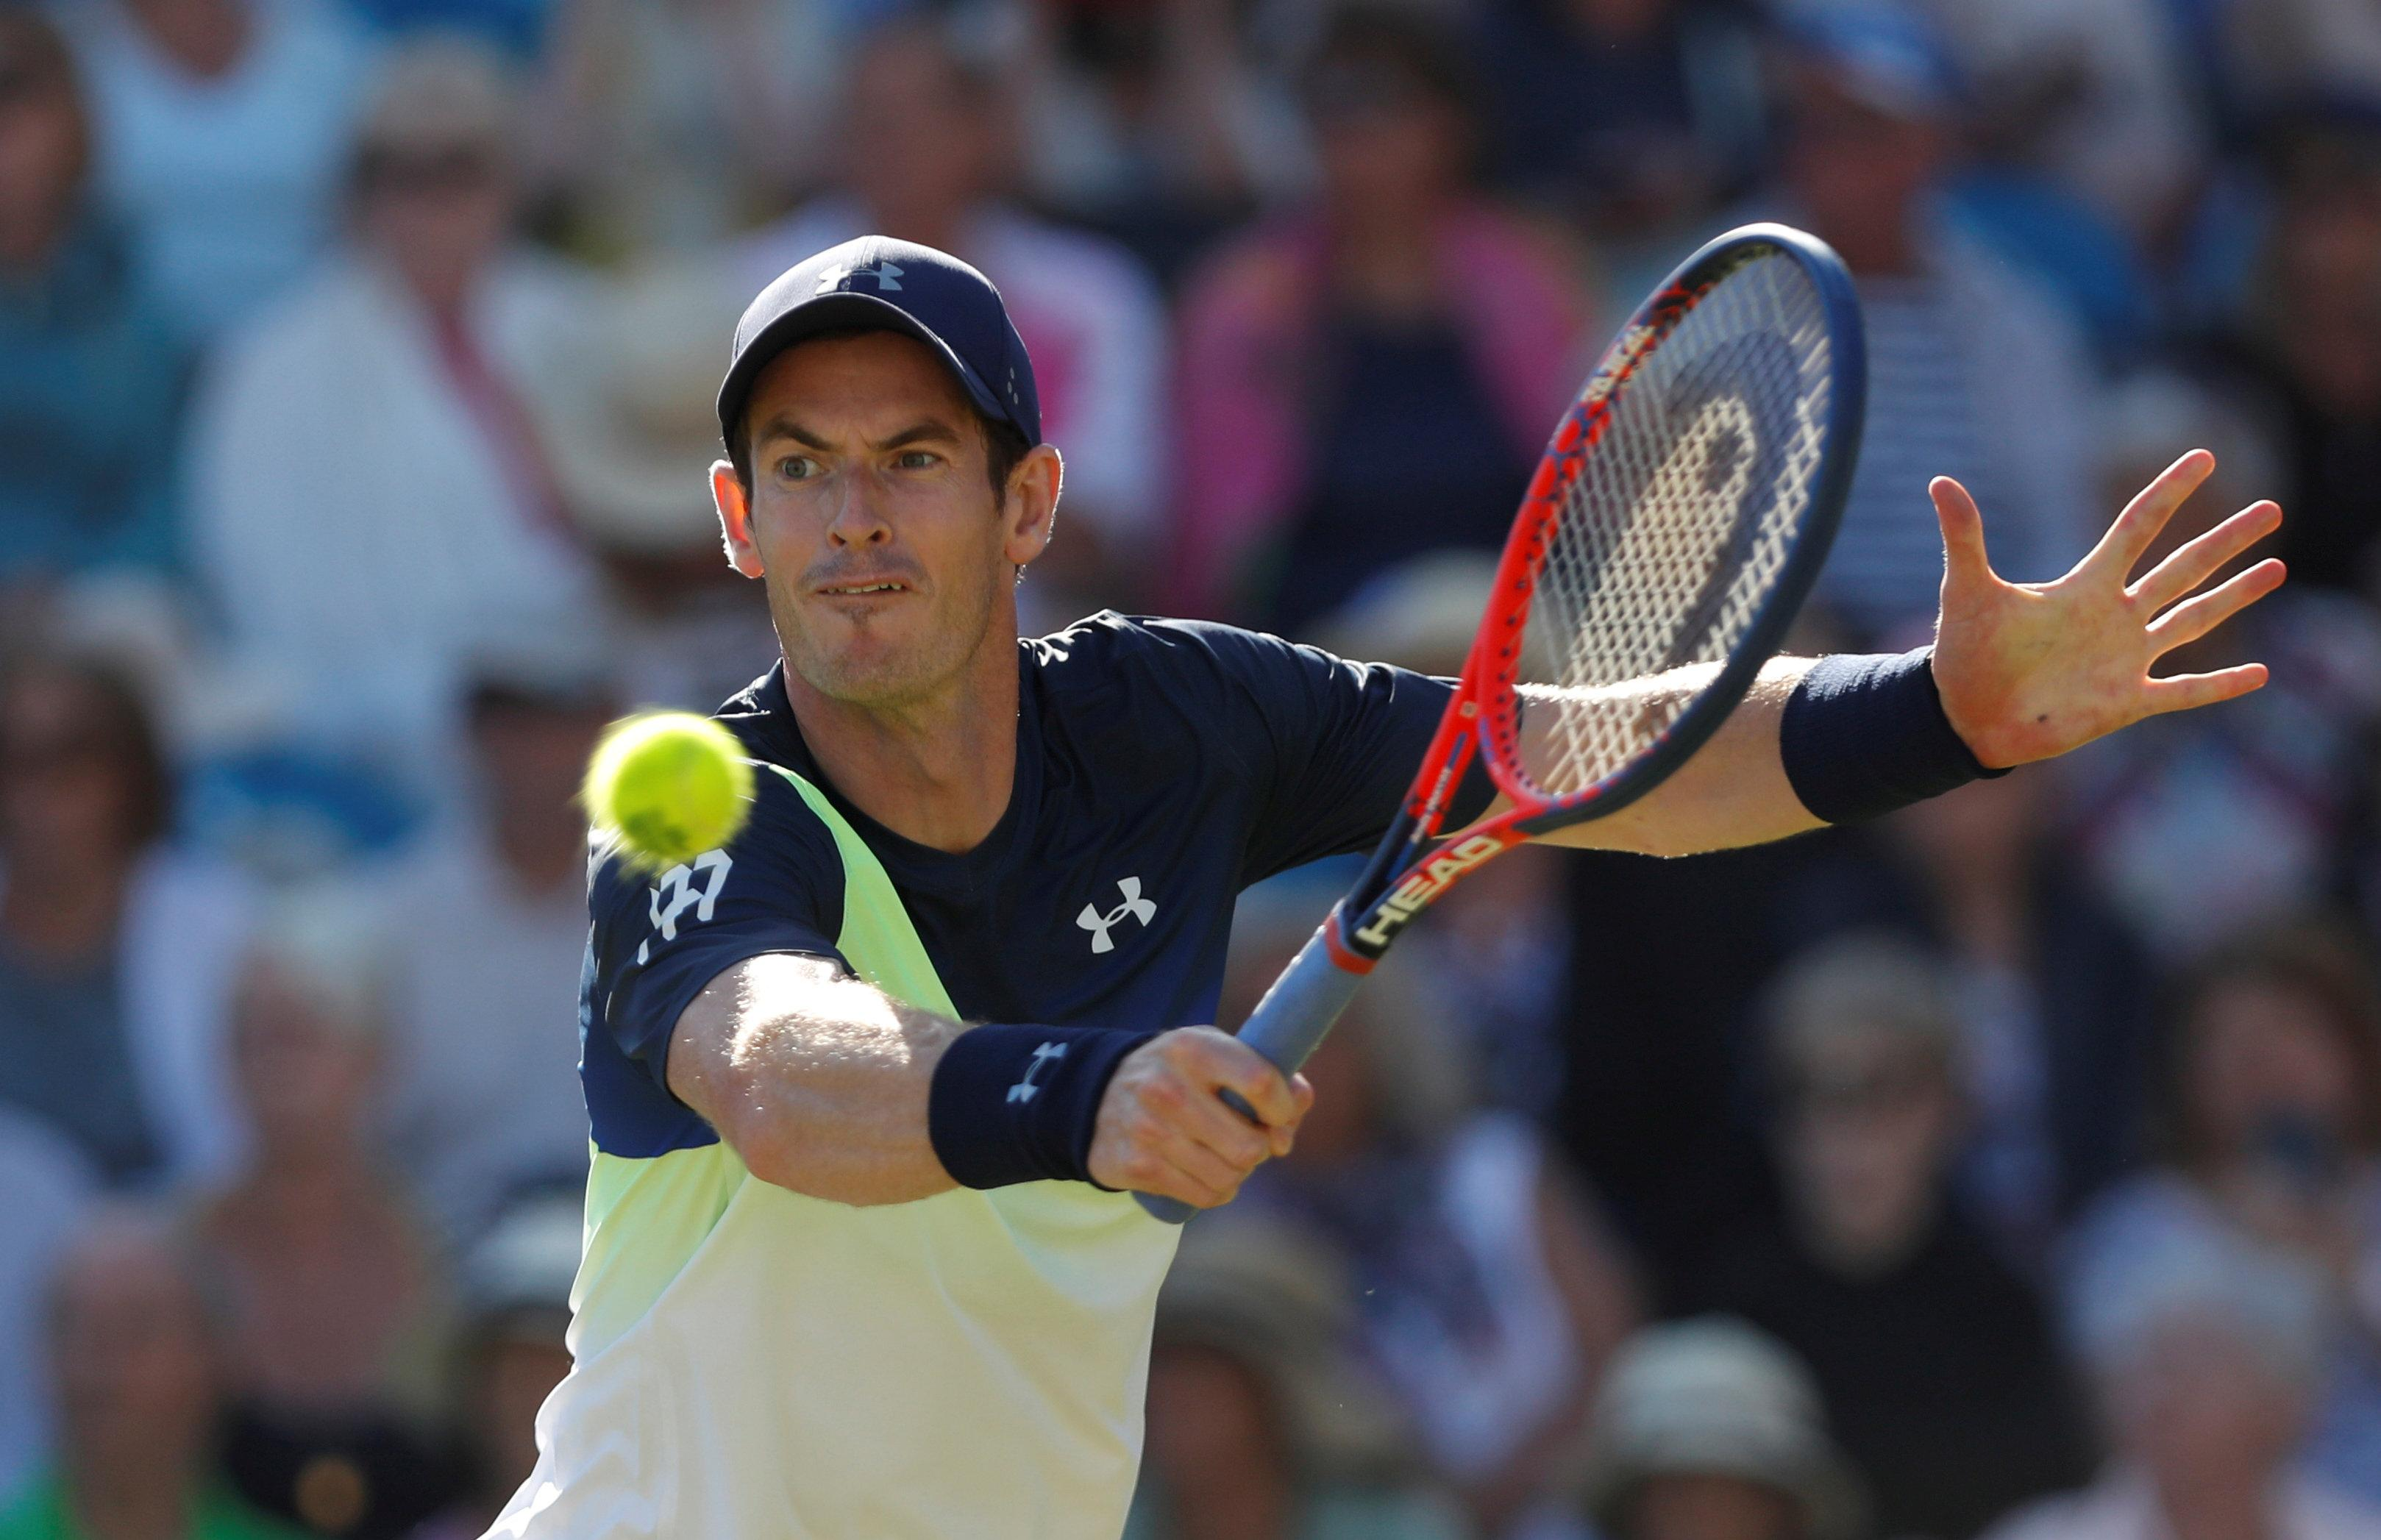 Andy Murray failed to make it back to full fitness for the summer's Wimbledon